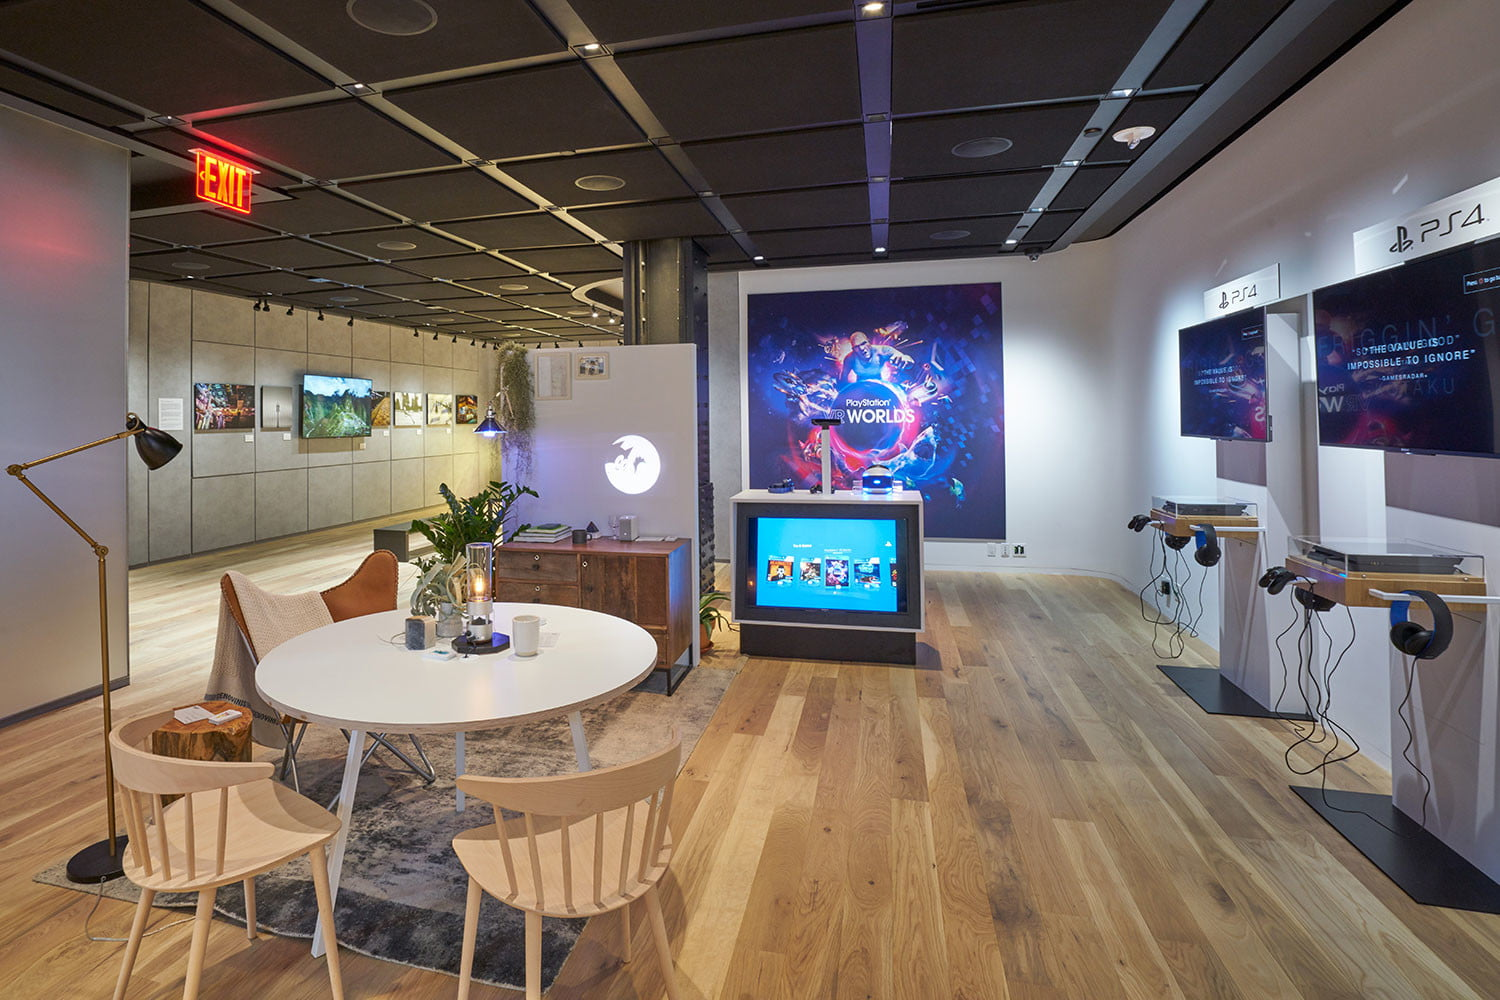 sony space nyc shows the best gadgets of today 03